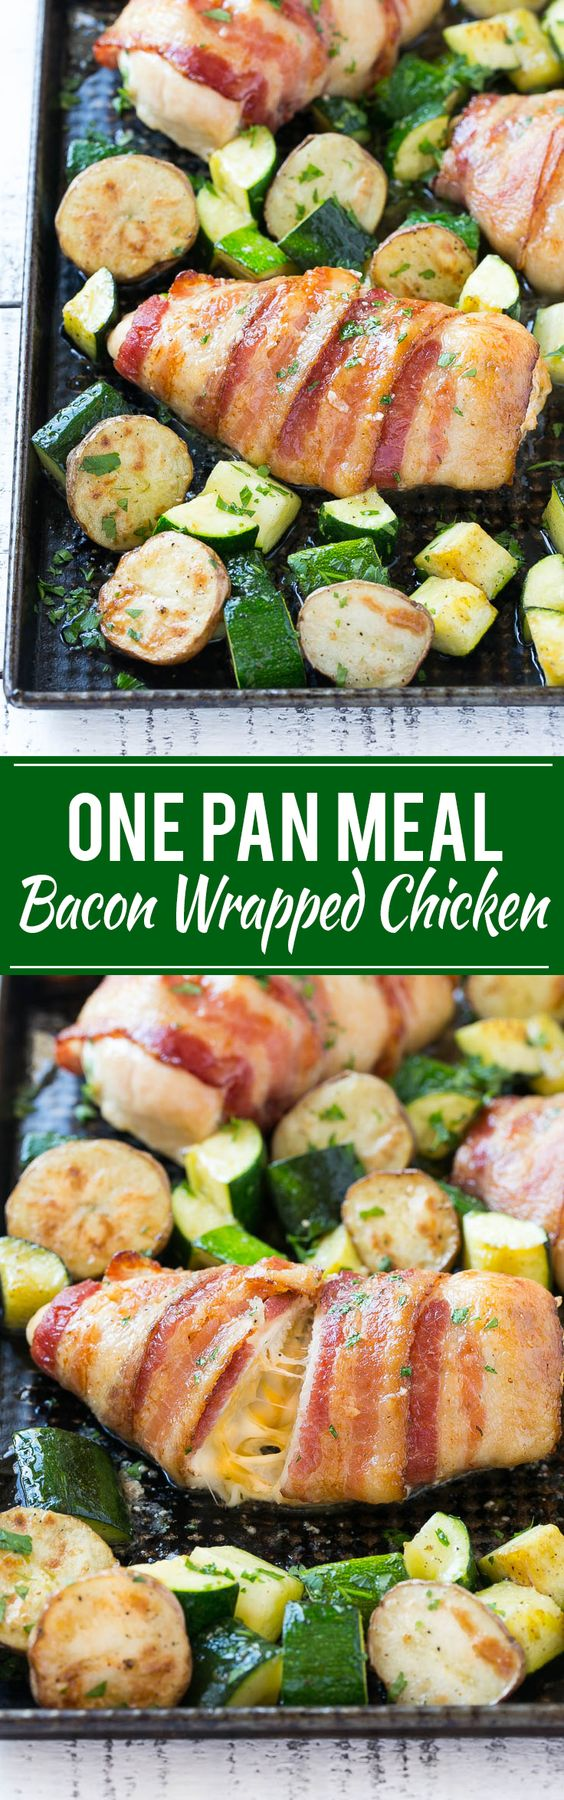 One Sheet Pan Bacon Wrapped Stuffed Chicken with Veggies Recipe via Dinner at the Zoo - This recipe for bacon wrapped stuffed chicken breast with roasted potatoes and zucchini is a quick and easy one pan meal that's sure to please any crowd! The chicken is stuffed with a an incredible combination of three cheeses, garlic and herbs. #sheetpansuppers #sheetpanrecipes #sheetpandinners #onepanmeals #healthyrecipes #mealprep #easyrecipes #healthydinners #healthysuppers #healthylunches #simplefamilymeals #simplefamilyrecipes #simplerecipes